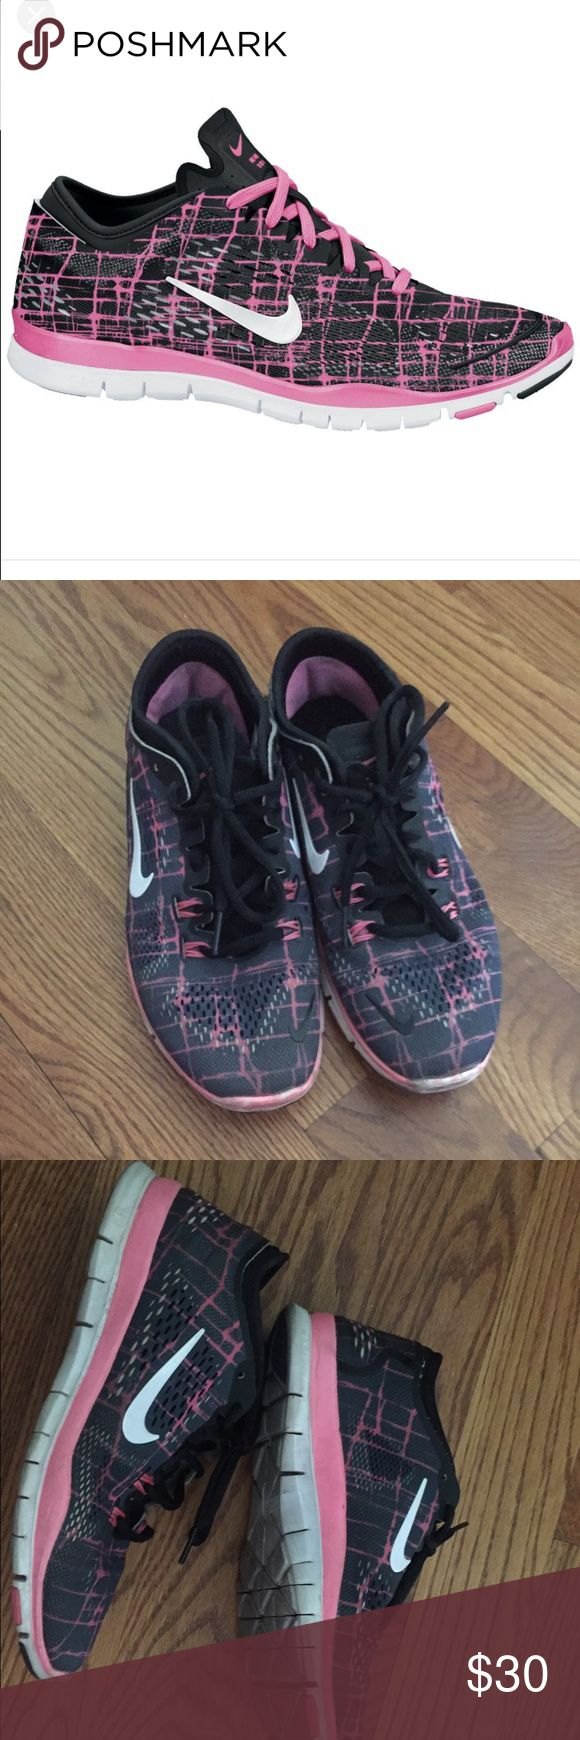 Nike ladies 🆓5.0 Trainer TR FIT 4 Nike ladies 🆓5.0 Trainer TR FIT 4. Fun pink and black coloring. Perfect for all types of workouts and adventures. Used condition with some dirt spots as shown in pictures. RN 629832-003 Nike Shoes Athletic Shoes